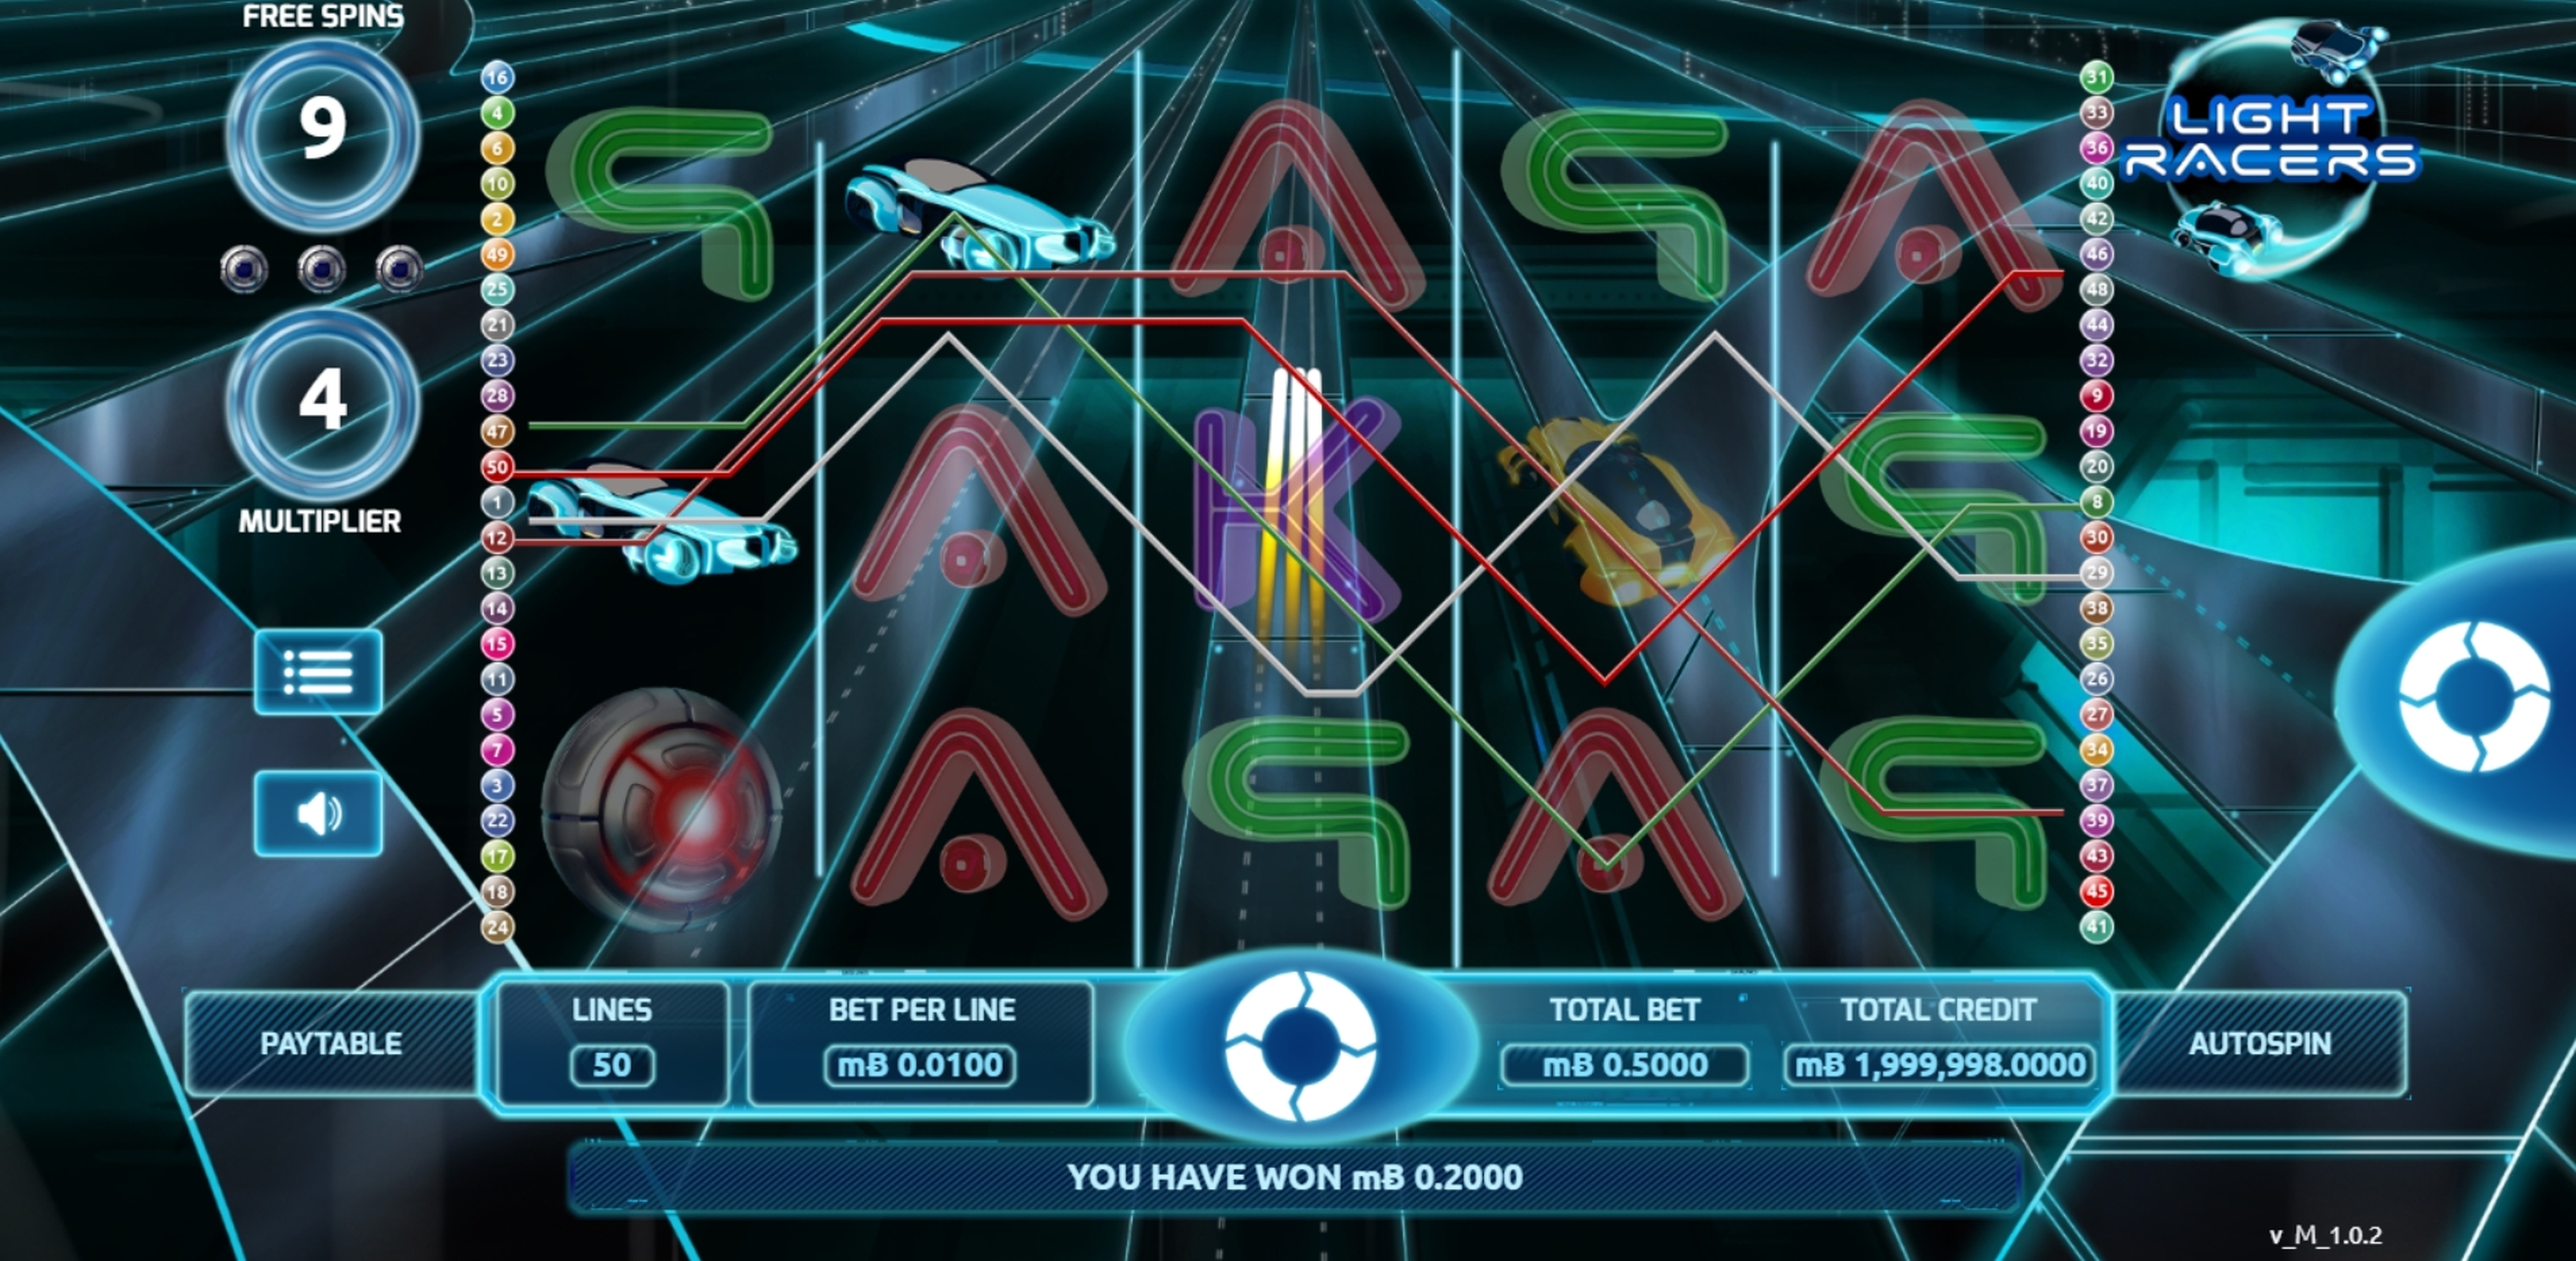 Win Money in Light Racers Free Slot Game by The Games Company